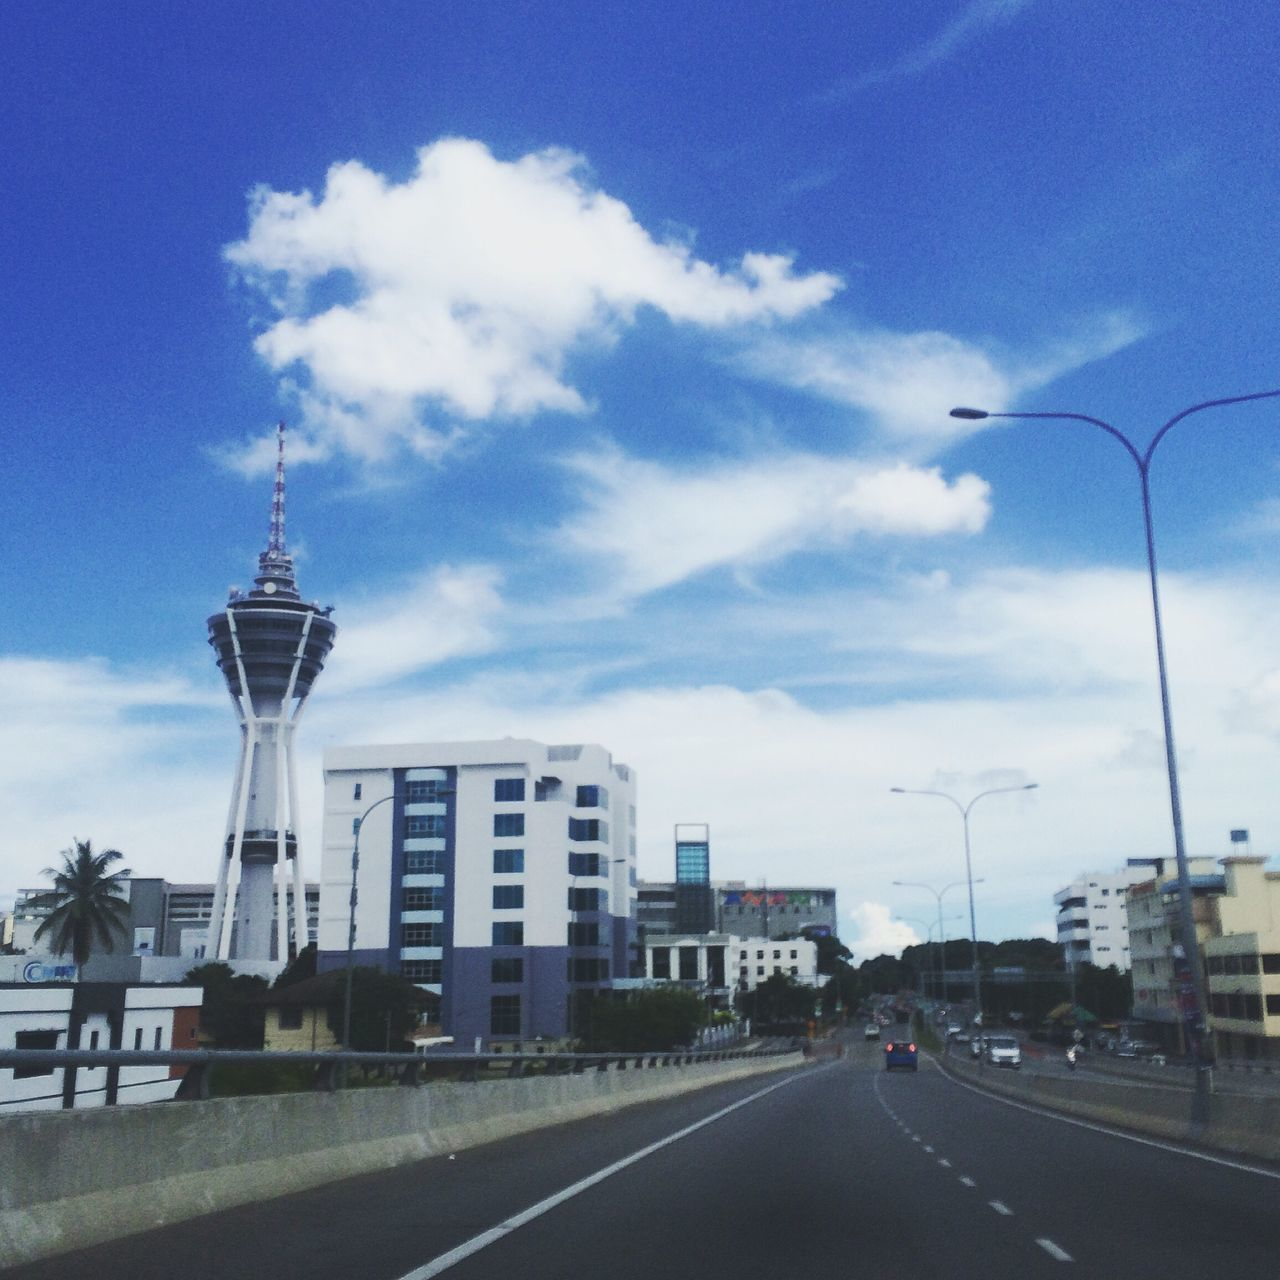 architecture, road, built structure, sky, cloud - sky, transportation, day, building exterior, outdoors, city, no people